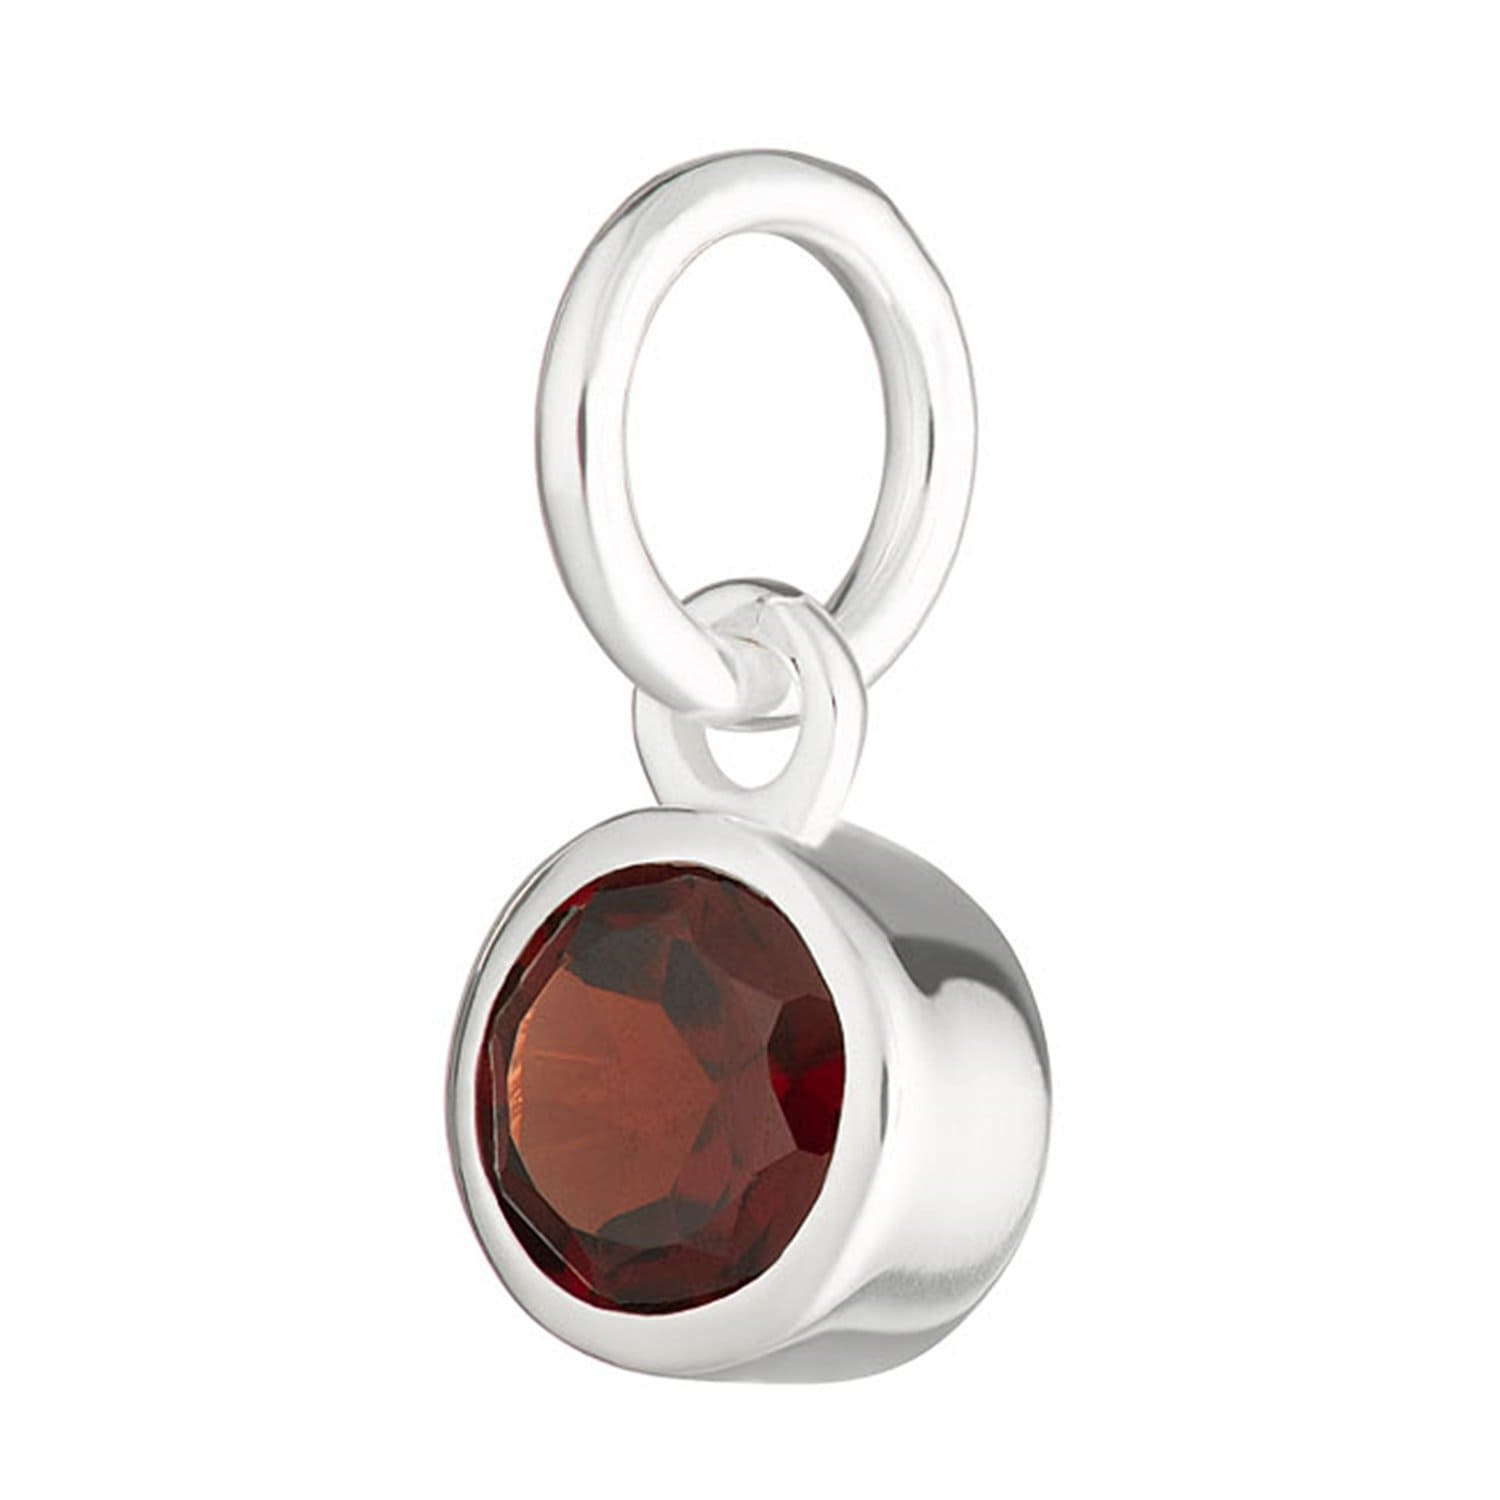 Garnet Charm - January Birthstone